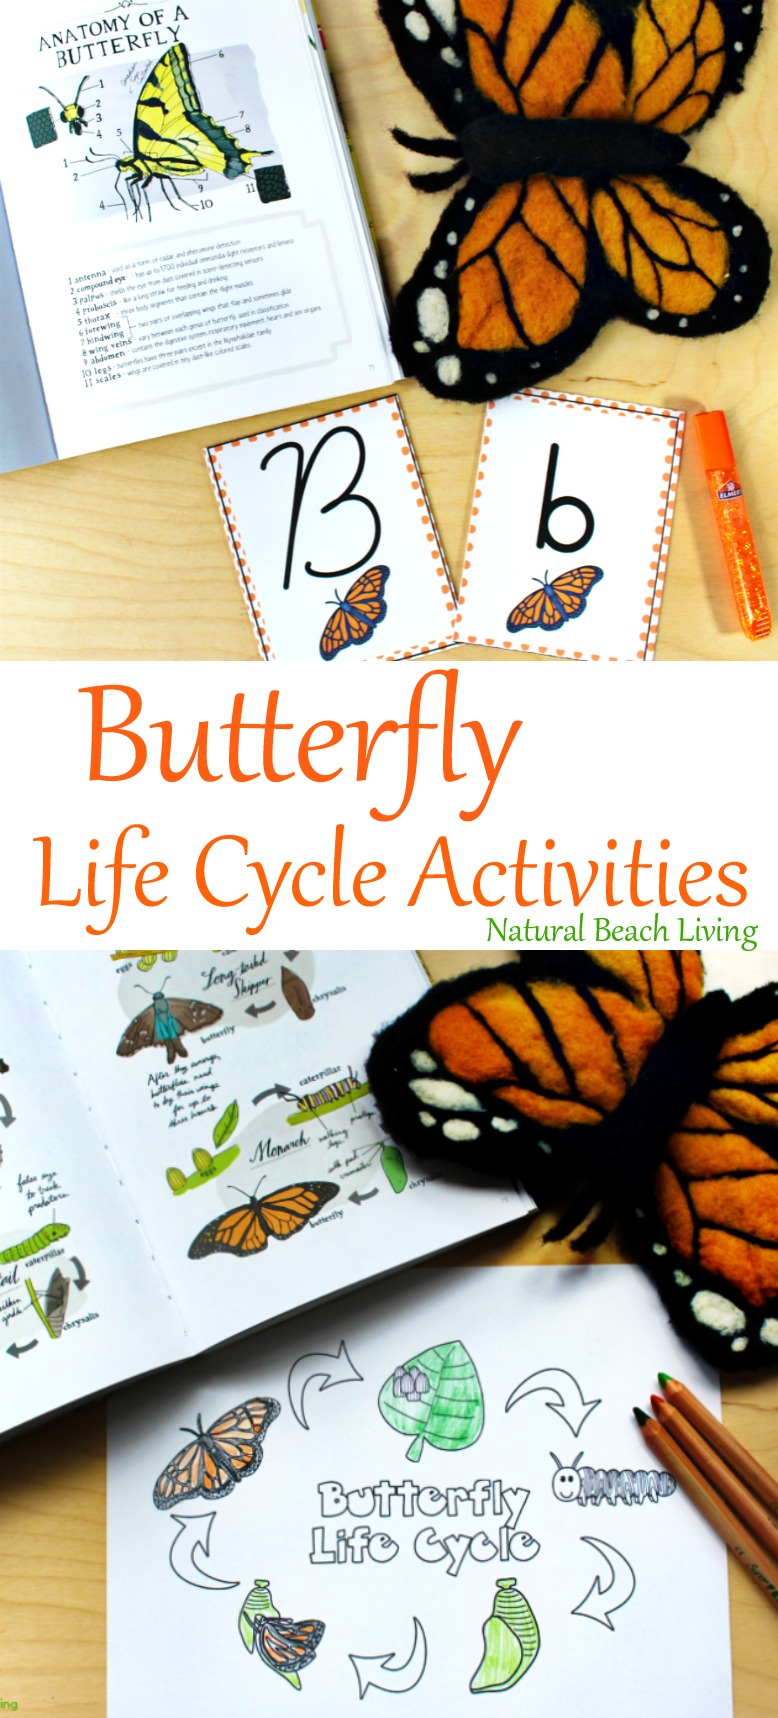 photograph about Butterfly Life Cycle Printable titled The Least complicated Butterfly Everyday living Cycle Pursuits for Youngsters - Organic